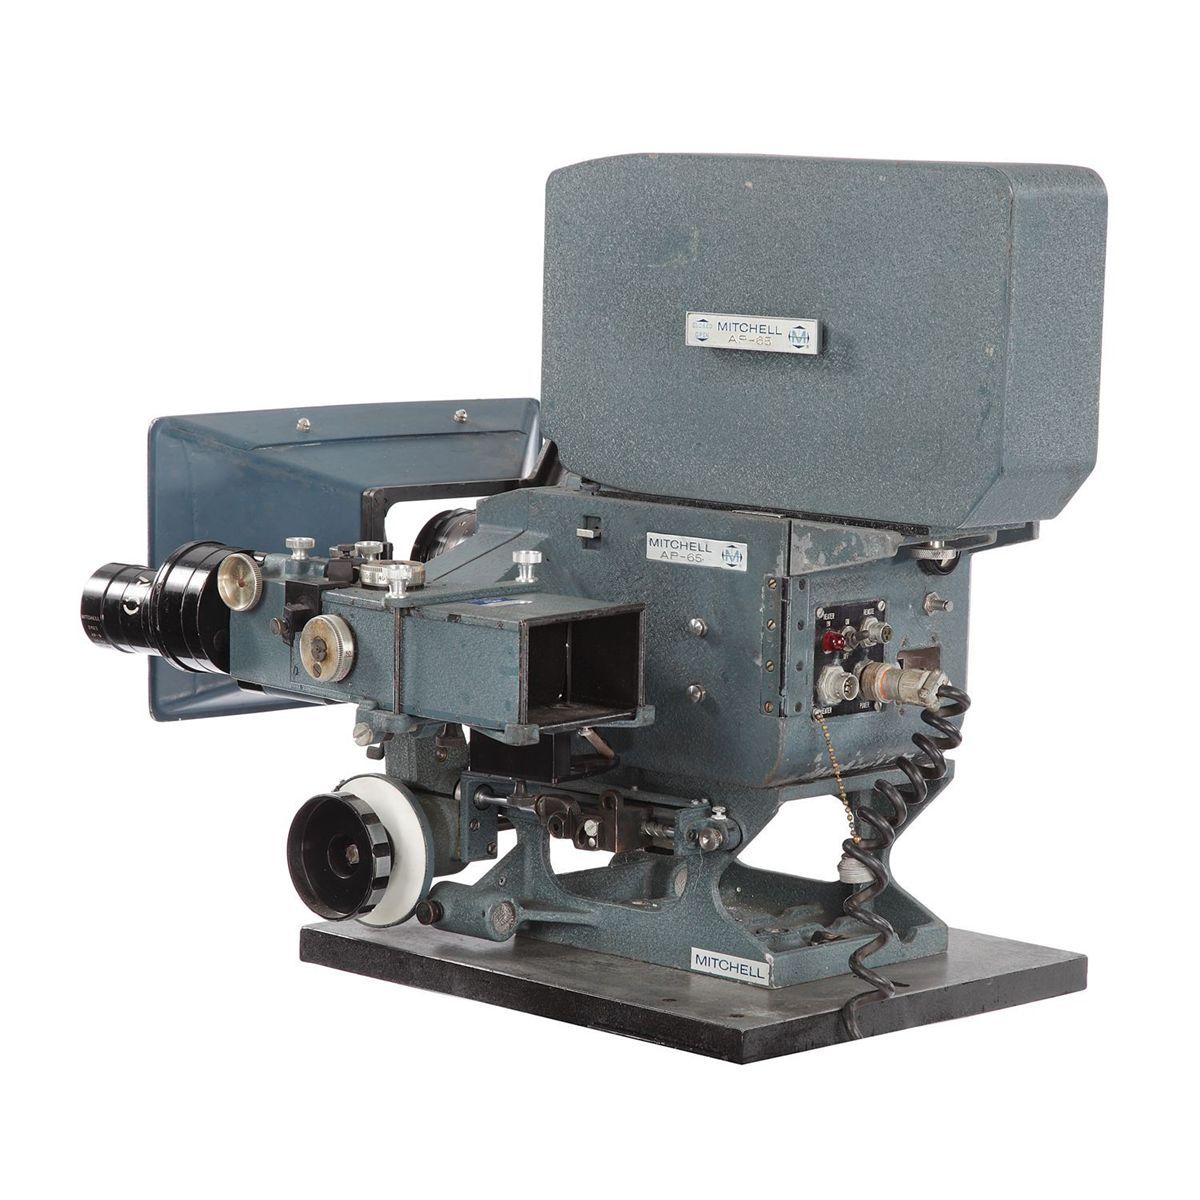 "A 65mm Mitchell Todd Ao Camera used in such productions as ""Patton"".  Light enough to be hand-held and used in areal mounts in helicopters."